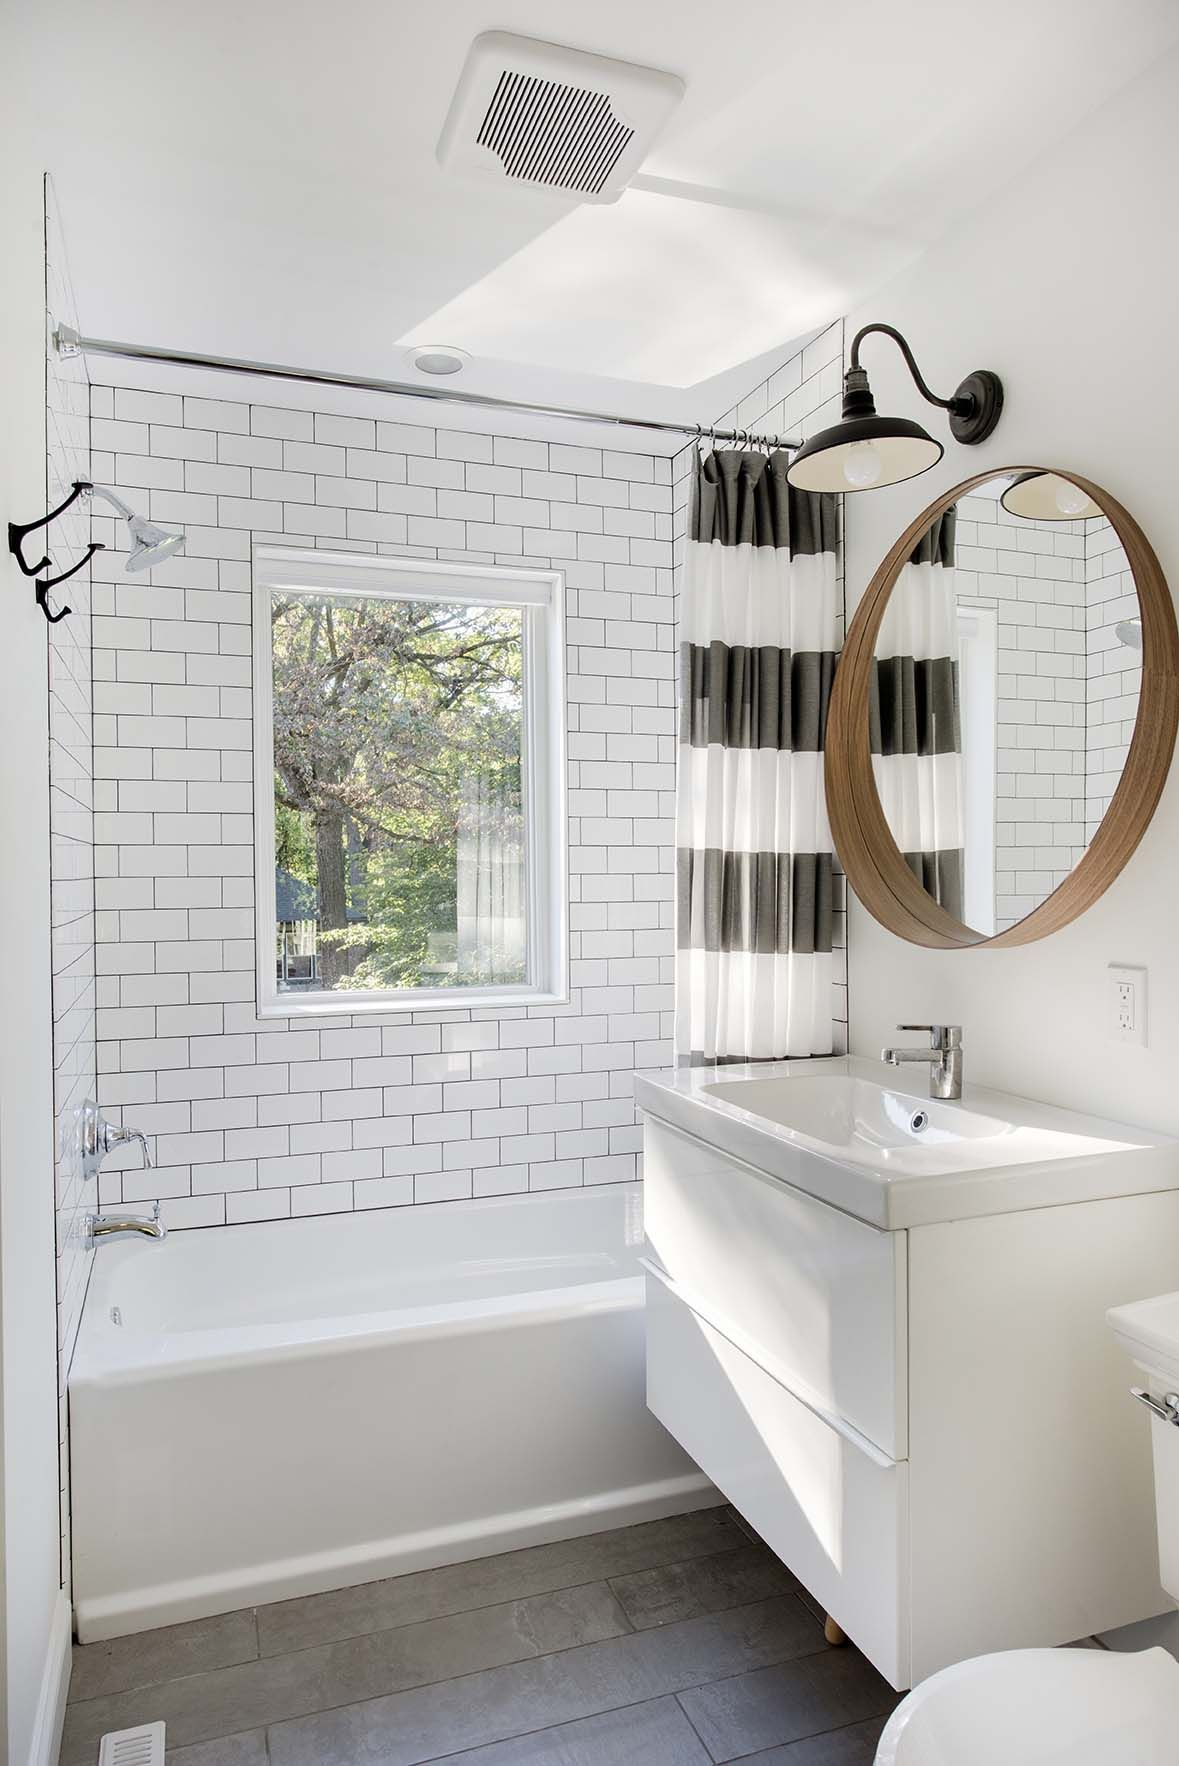 Urban Farmhouse In Minneapolis With Modern Industrial Details Home Depot Bathroom Small Bathroom Remodel Budget Bathroom Remodel